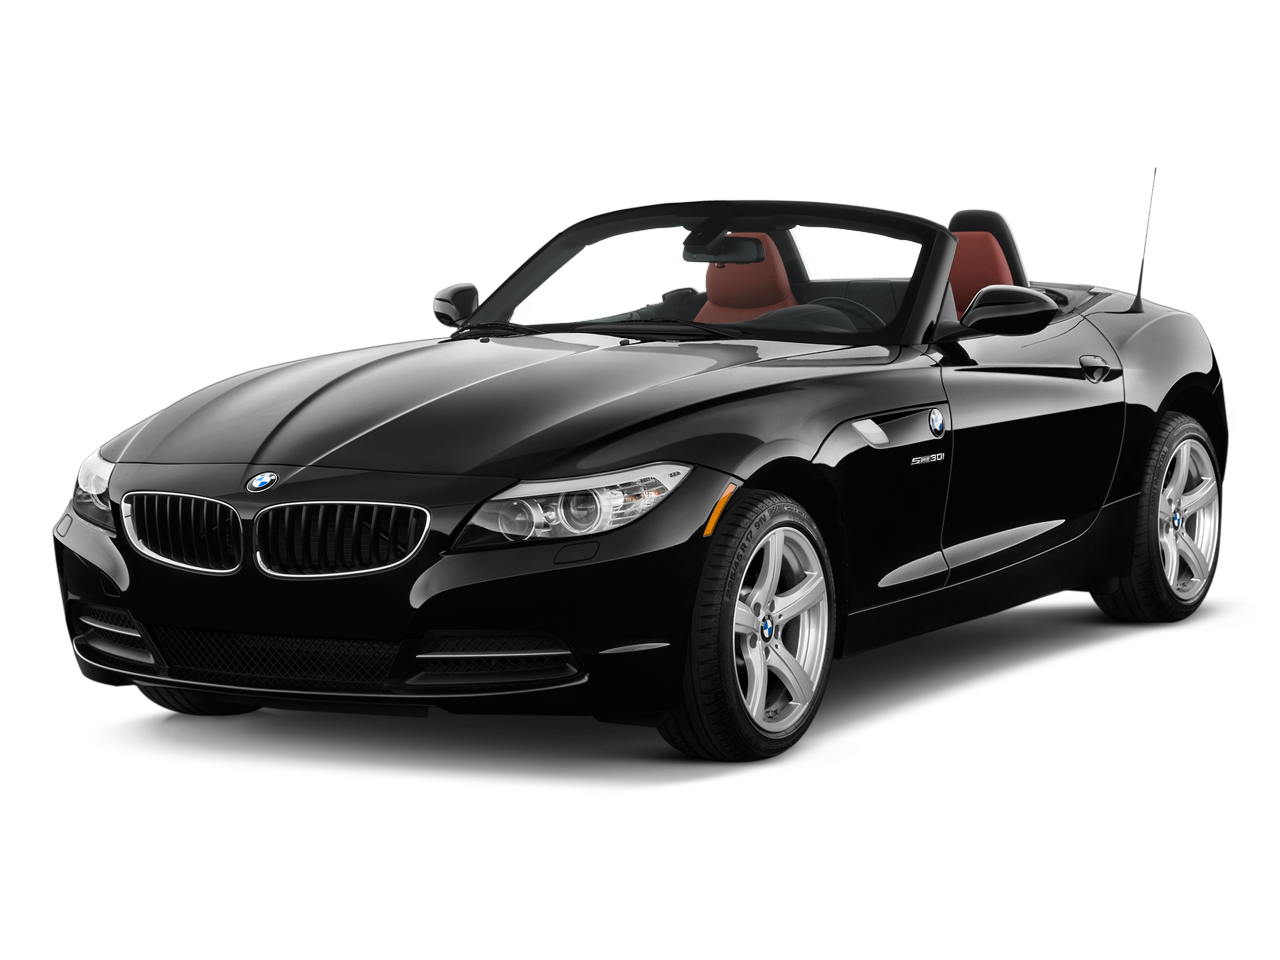 2009 bmw z4 bmw convertible coupe review automobile magazine. Black Bedroom Furniture Sets. Home Design Ideas